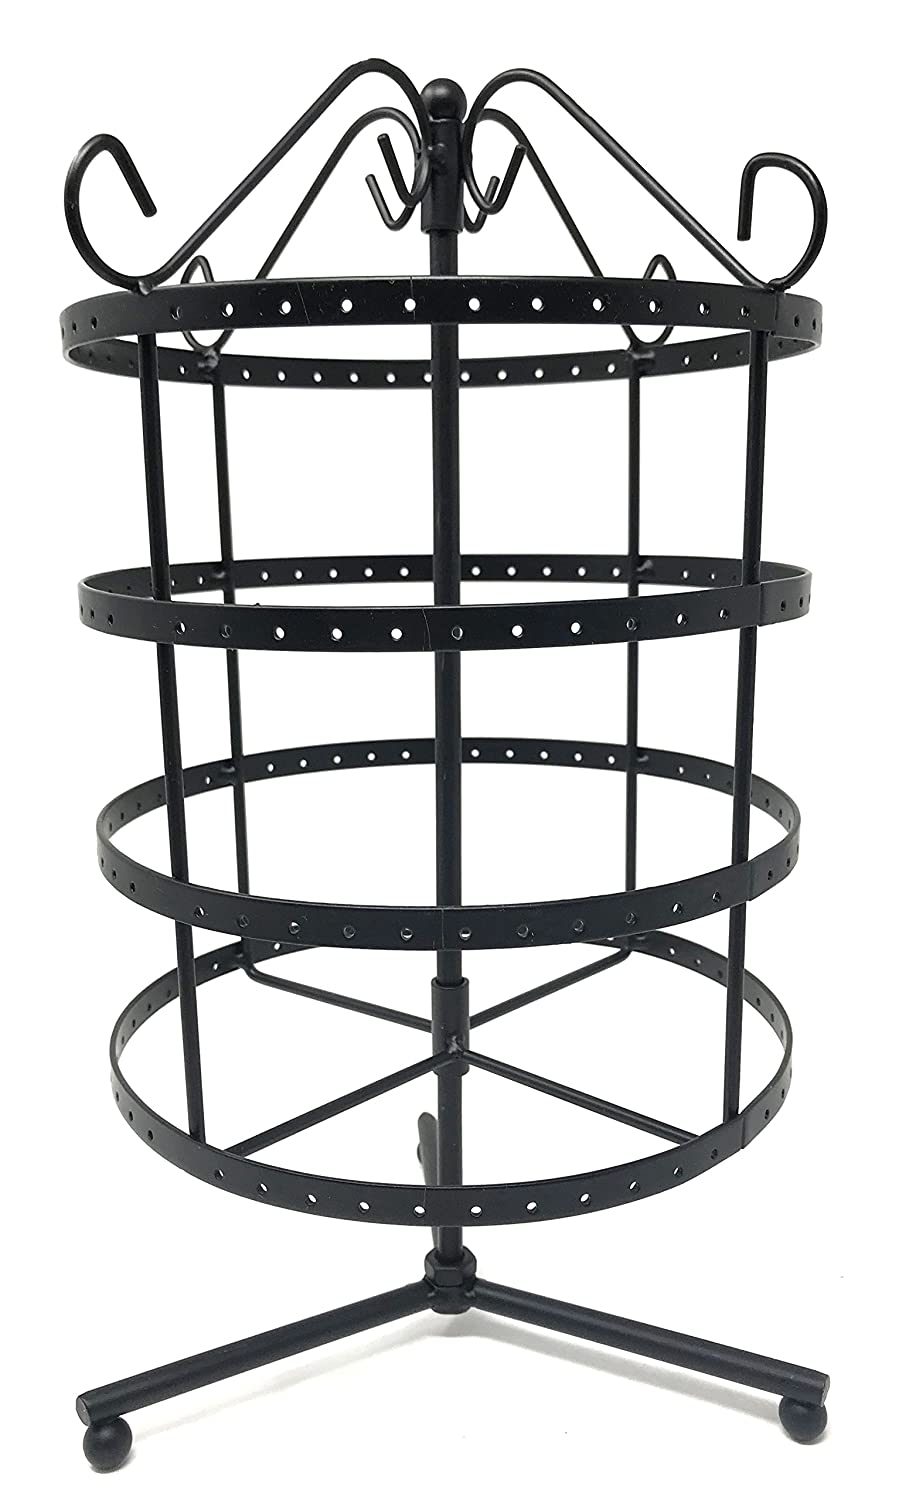 4 Tiers Rotating 92 pairs Earring Holder ~Necklace Organizer Stand ~ Jewelry Stand Display Rack Towers (Black) BJ Display